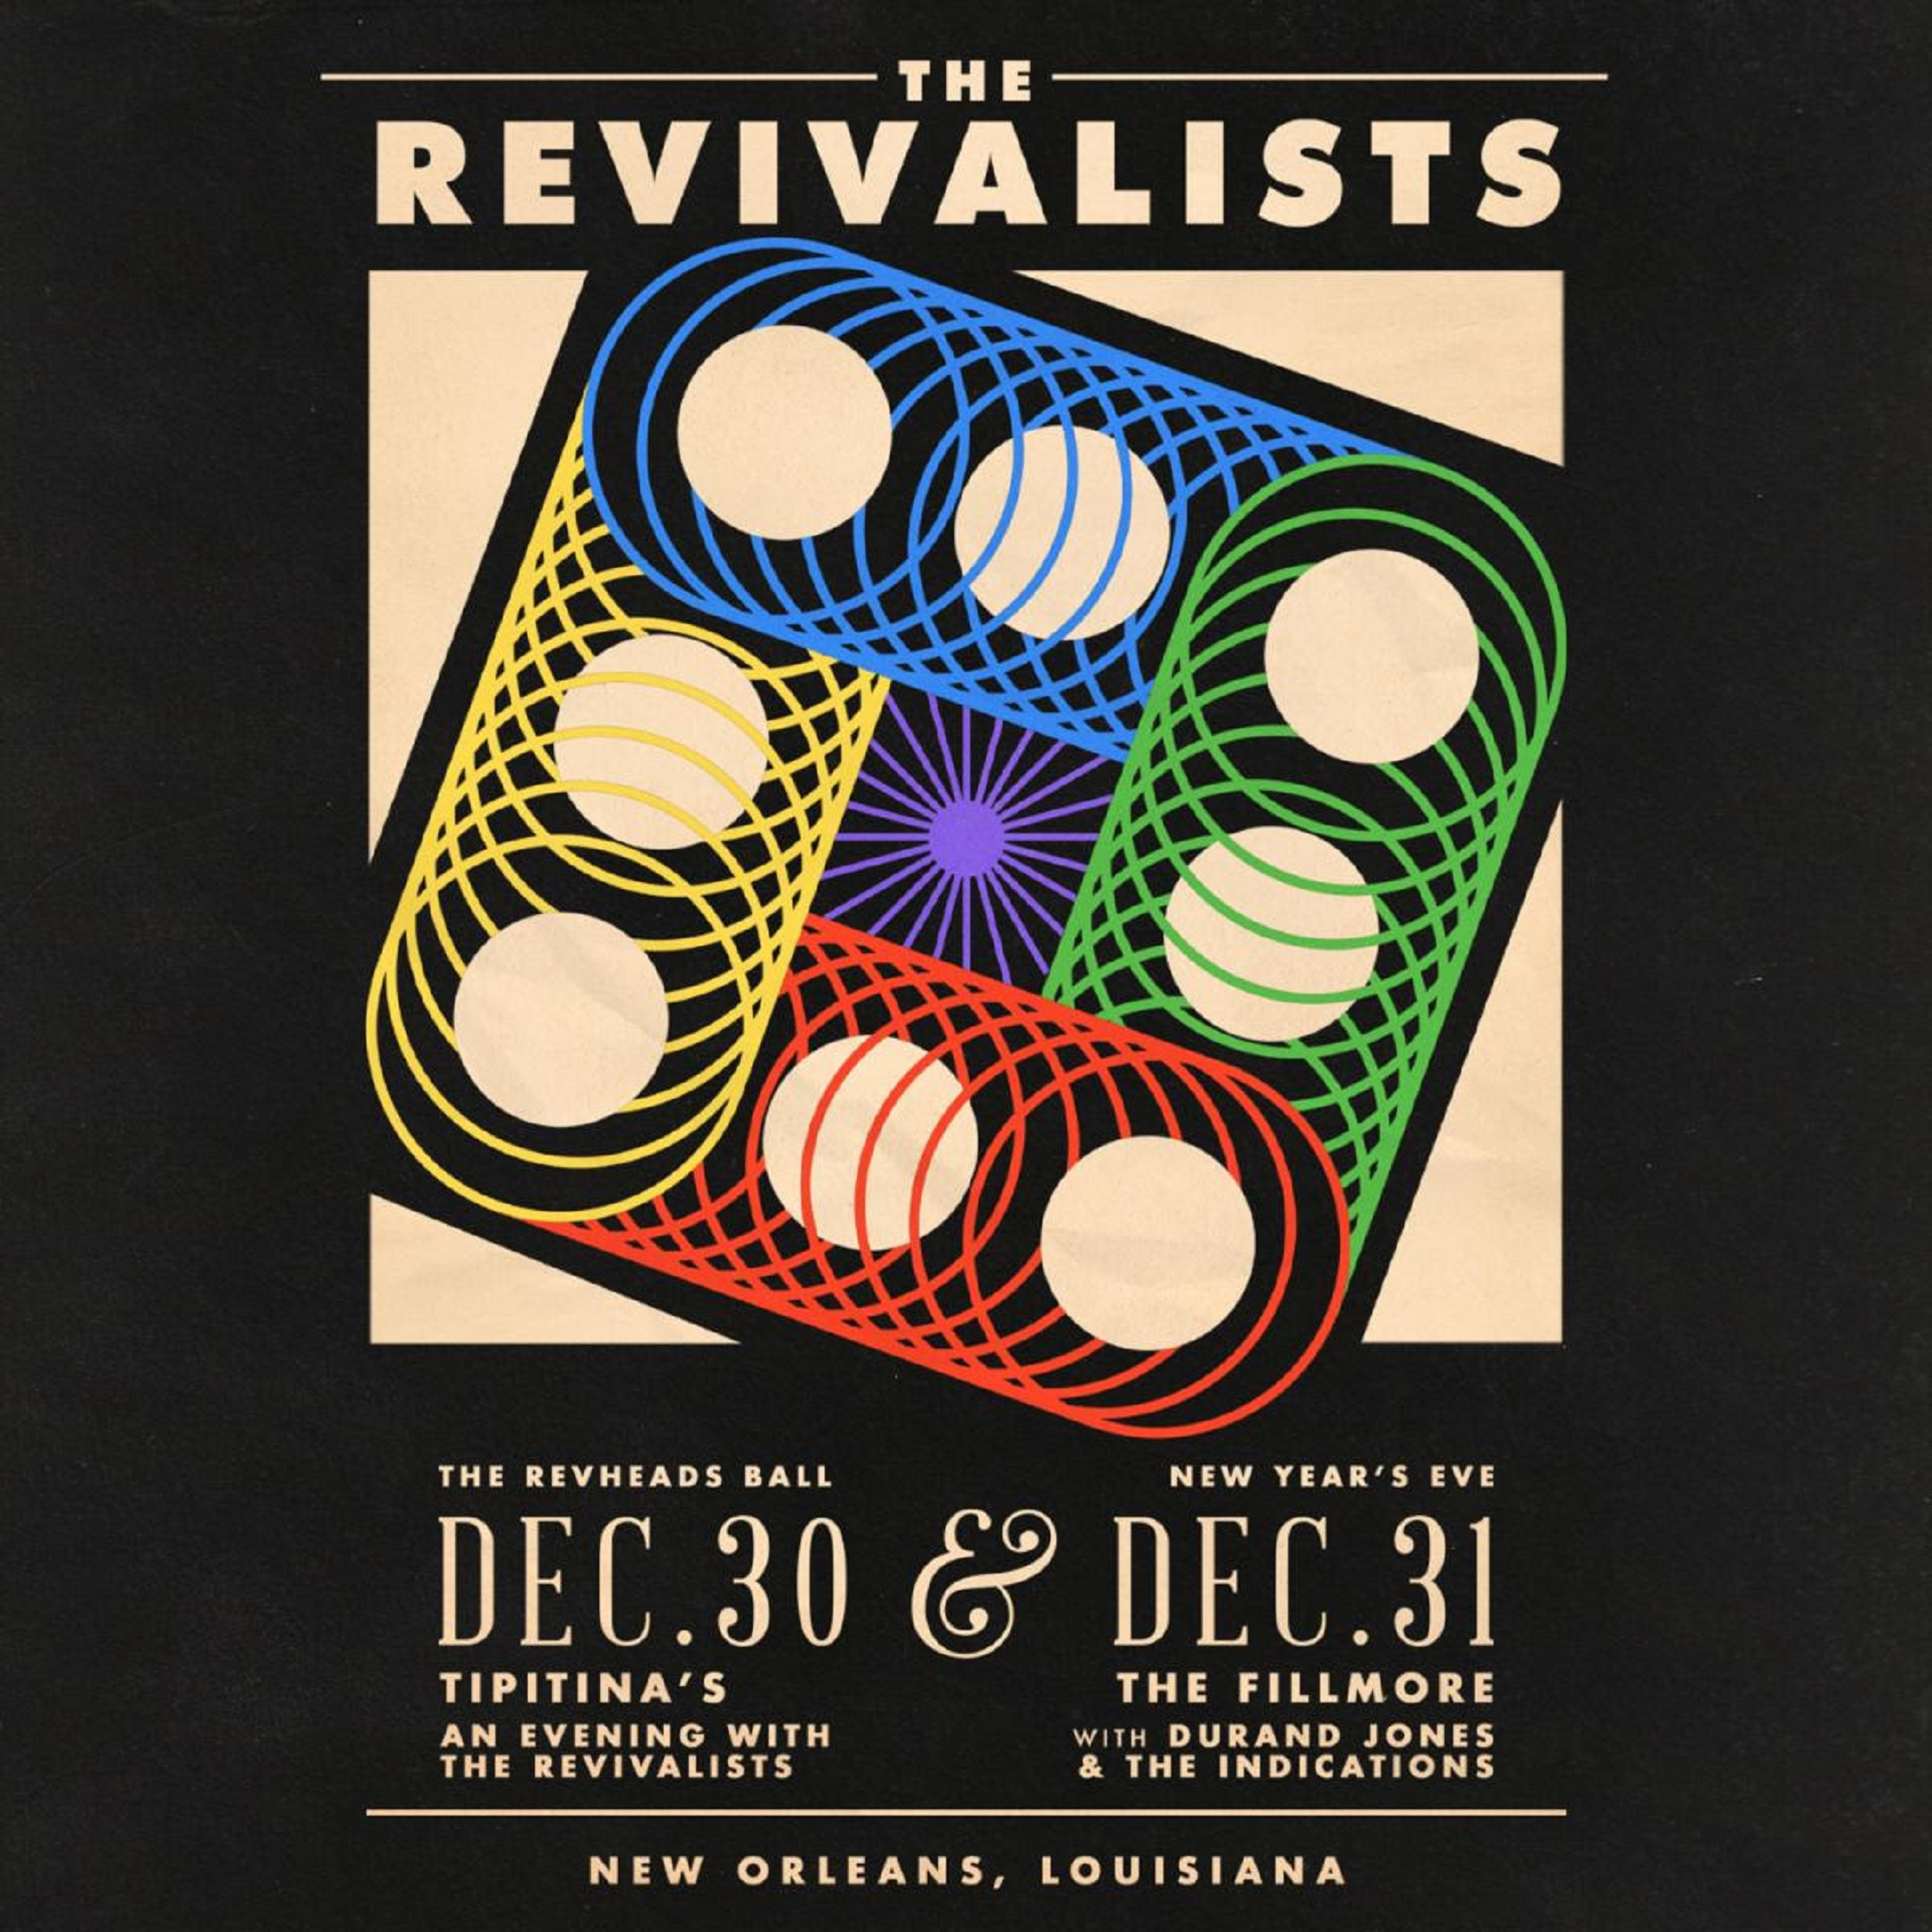 The Revivalists Announce Annual New Year's Eve Show